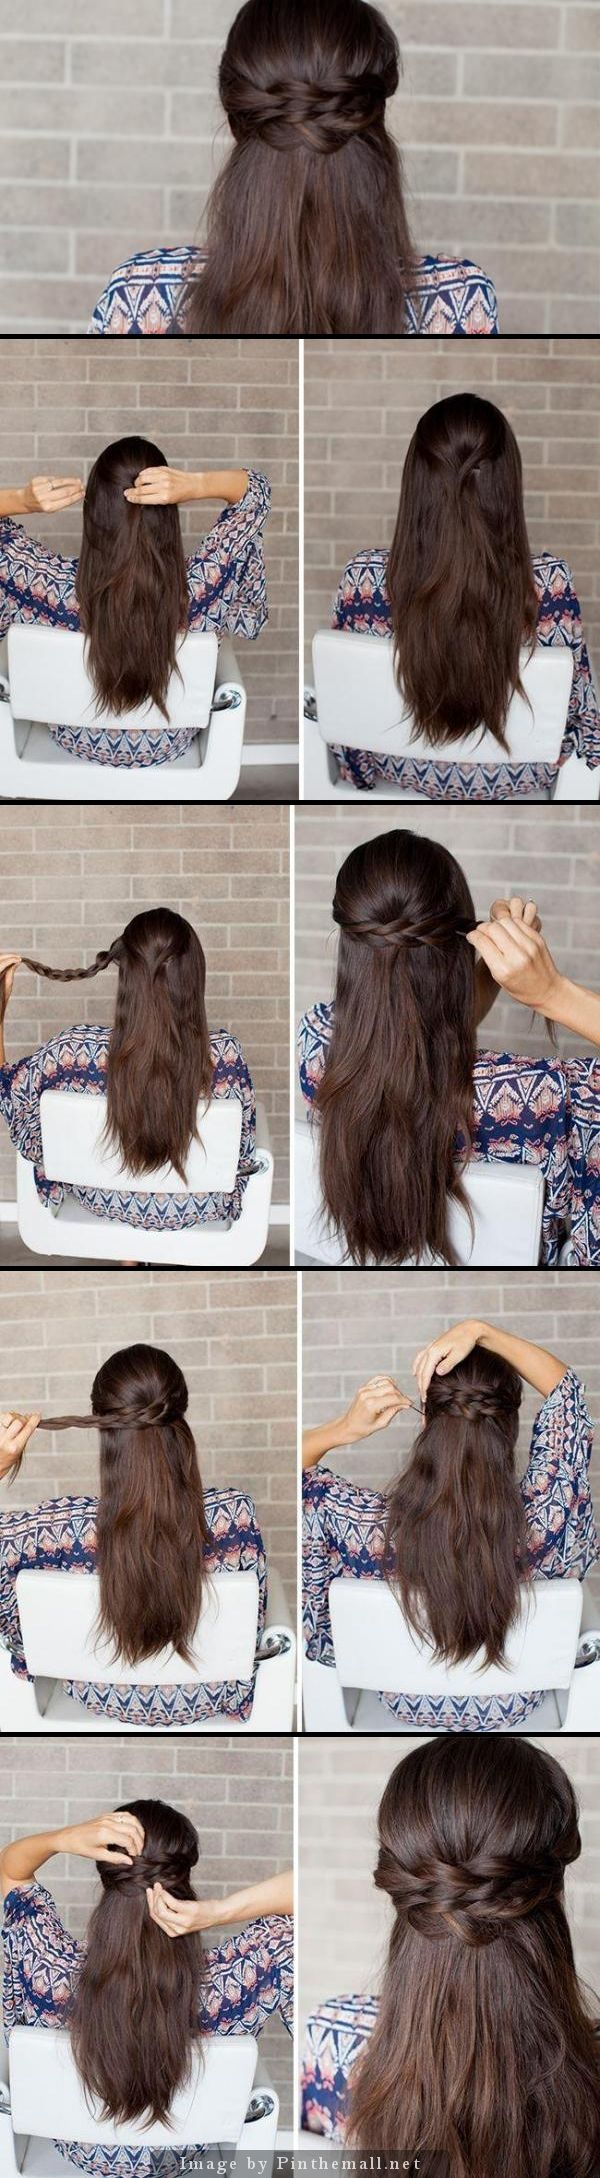 This style can work for any type of hair from short to long and straight to curly!